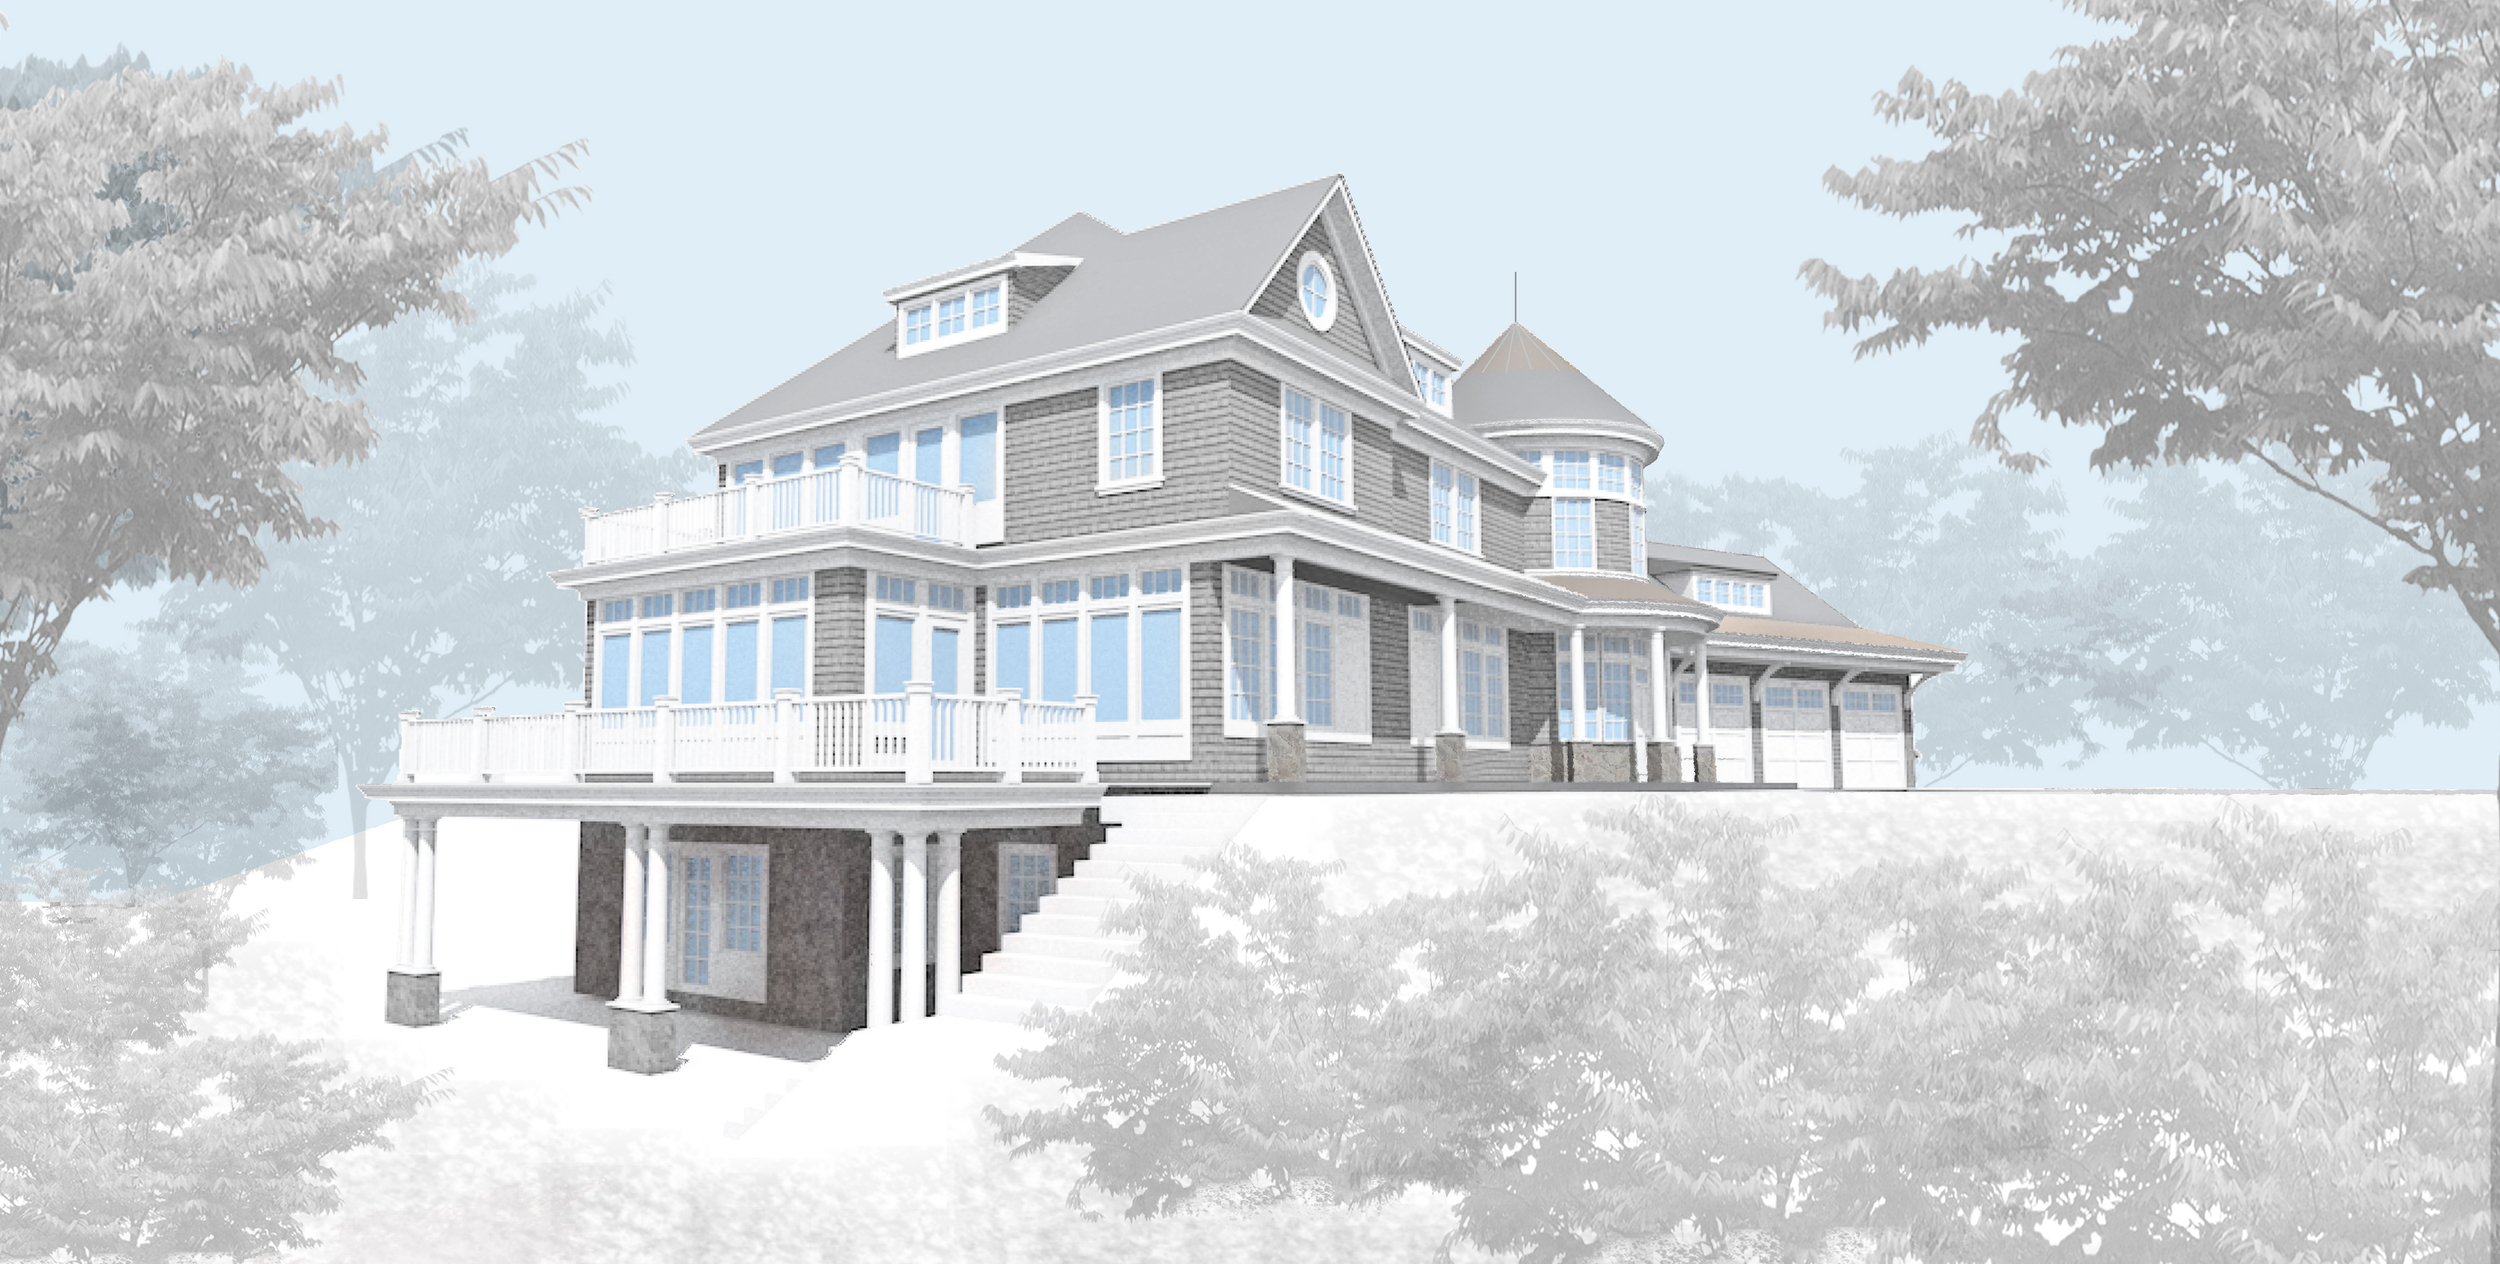 New exterior rendering with clear glass casement windows on Lake side